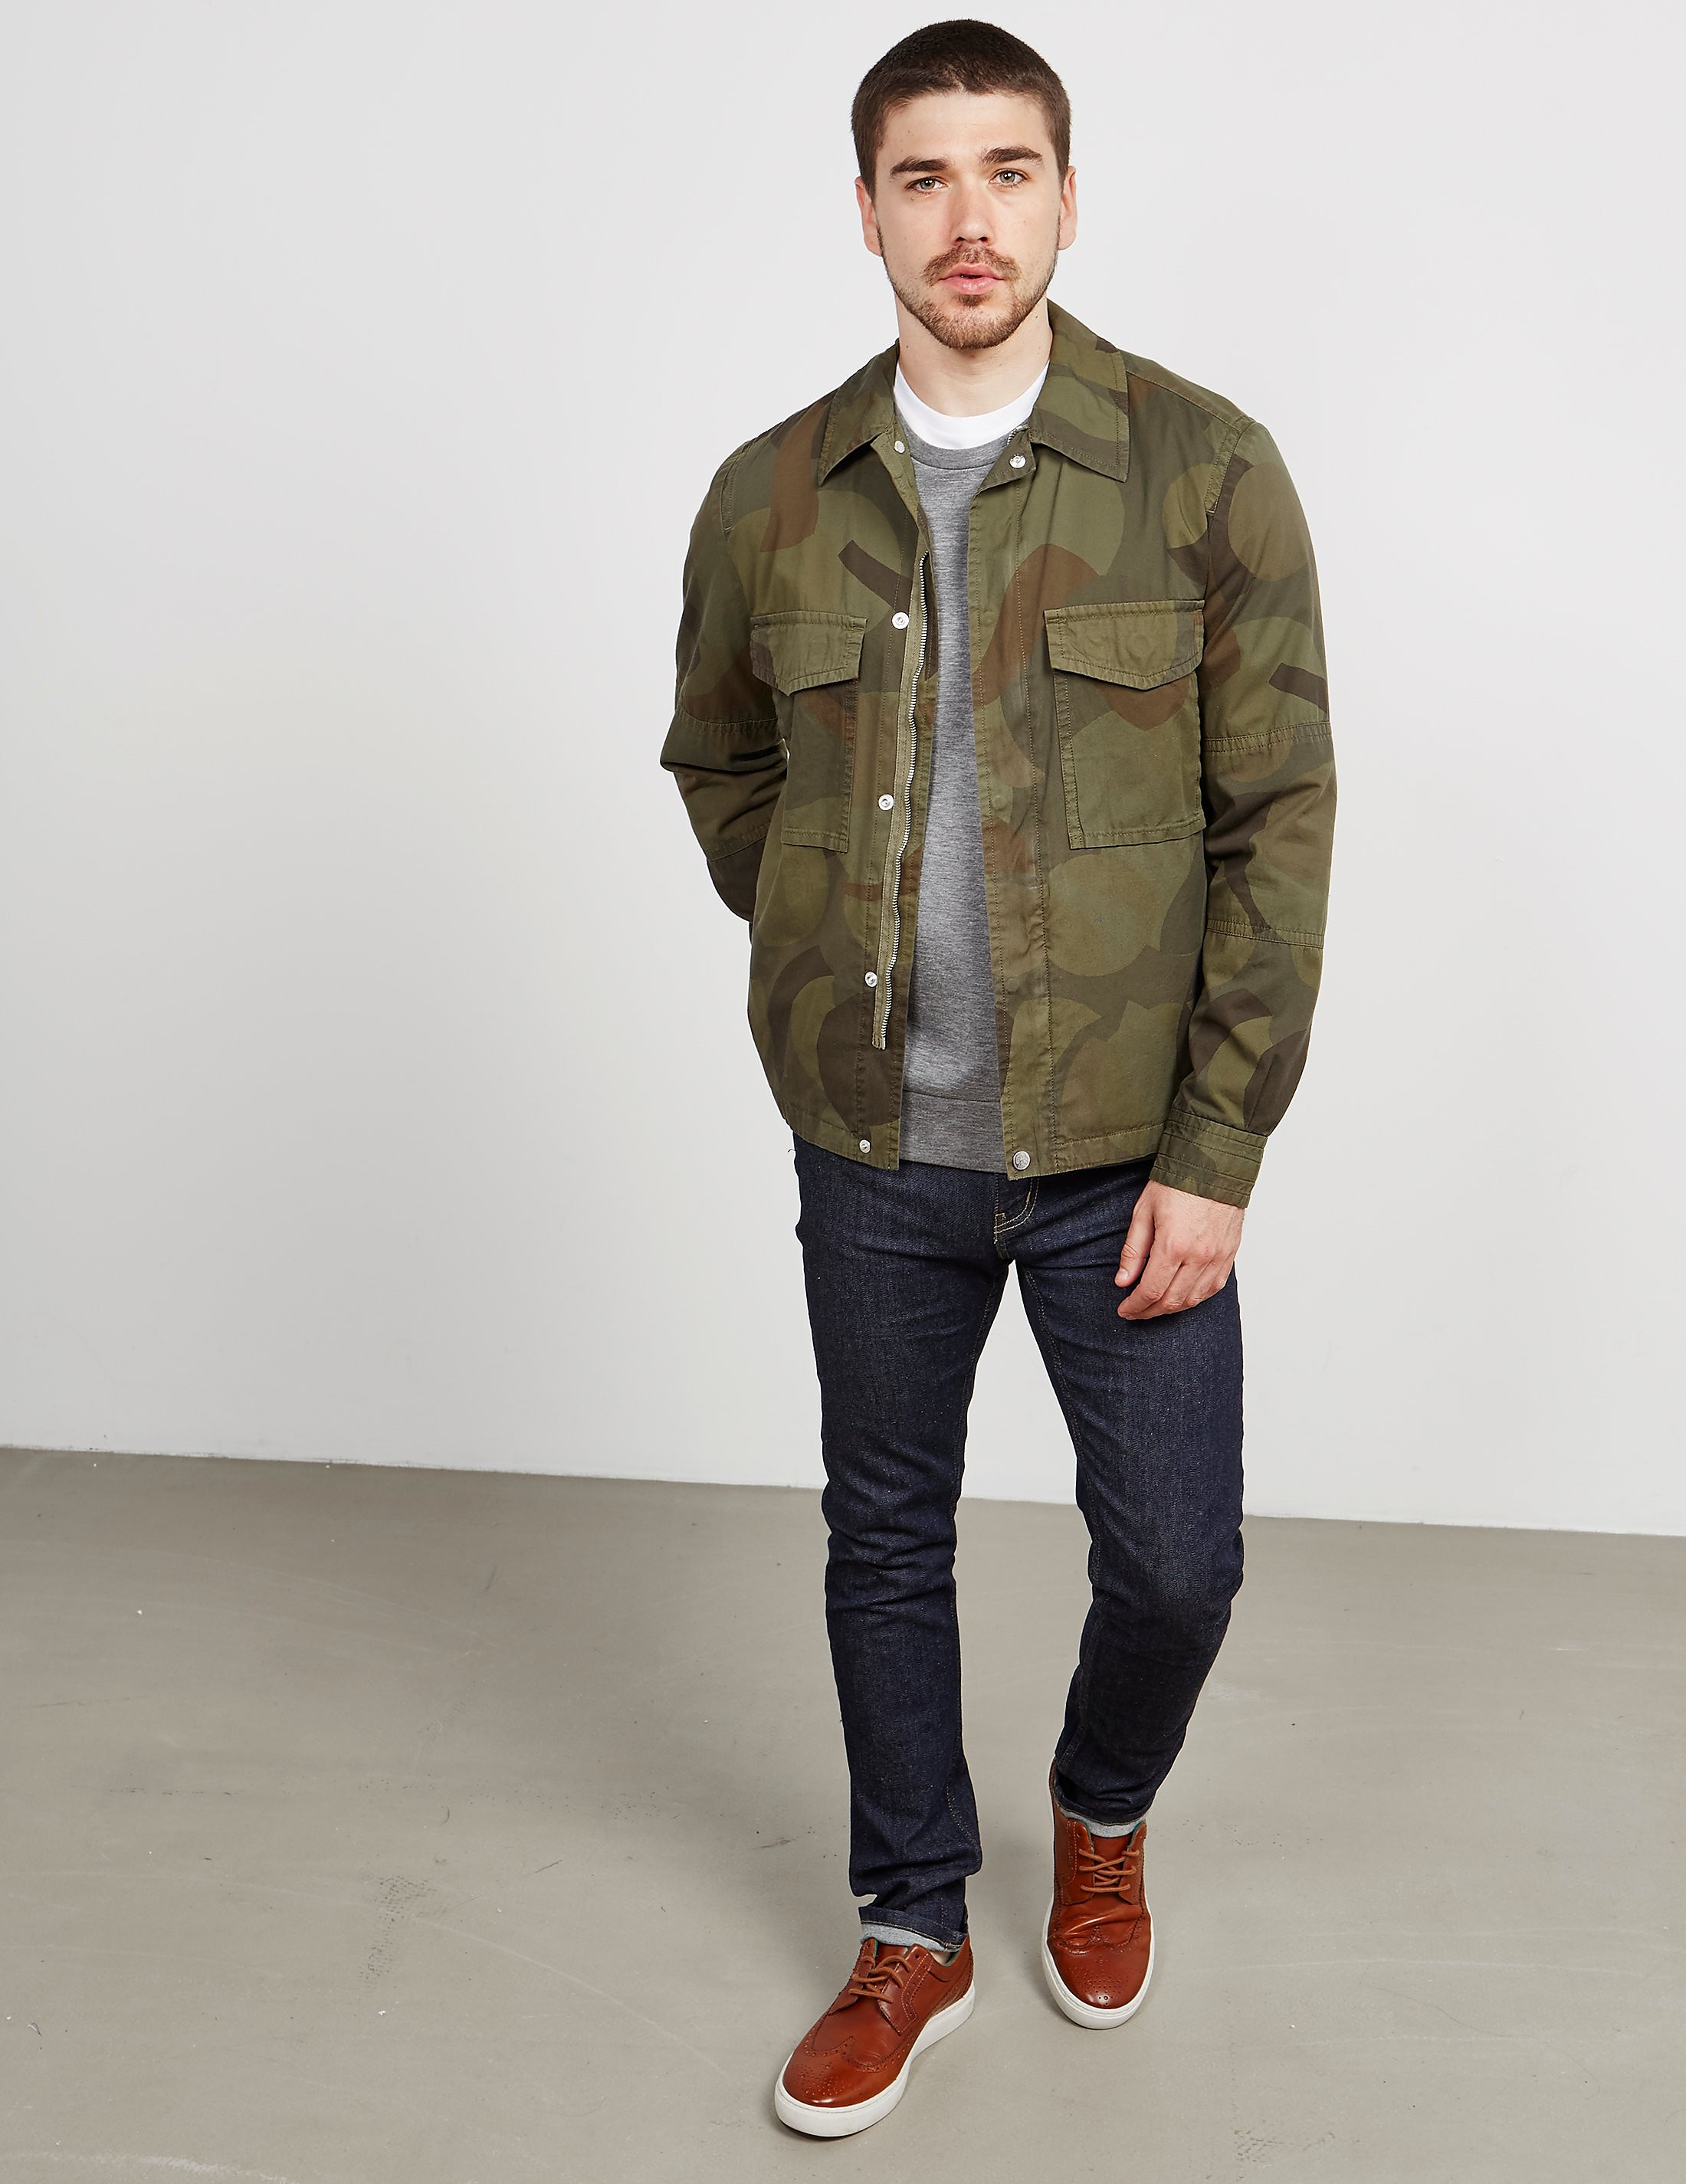 Paul Smith Camo Lightweight Jacket